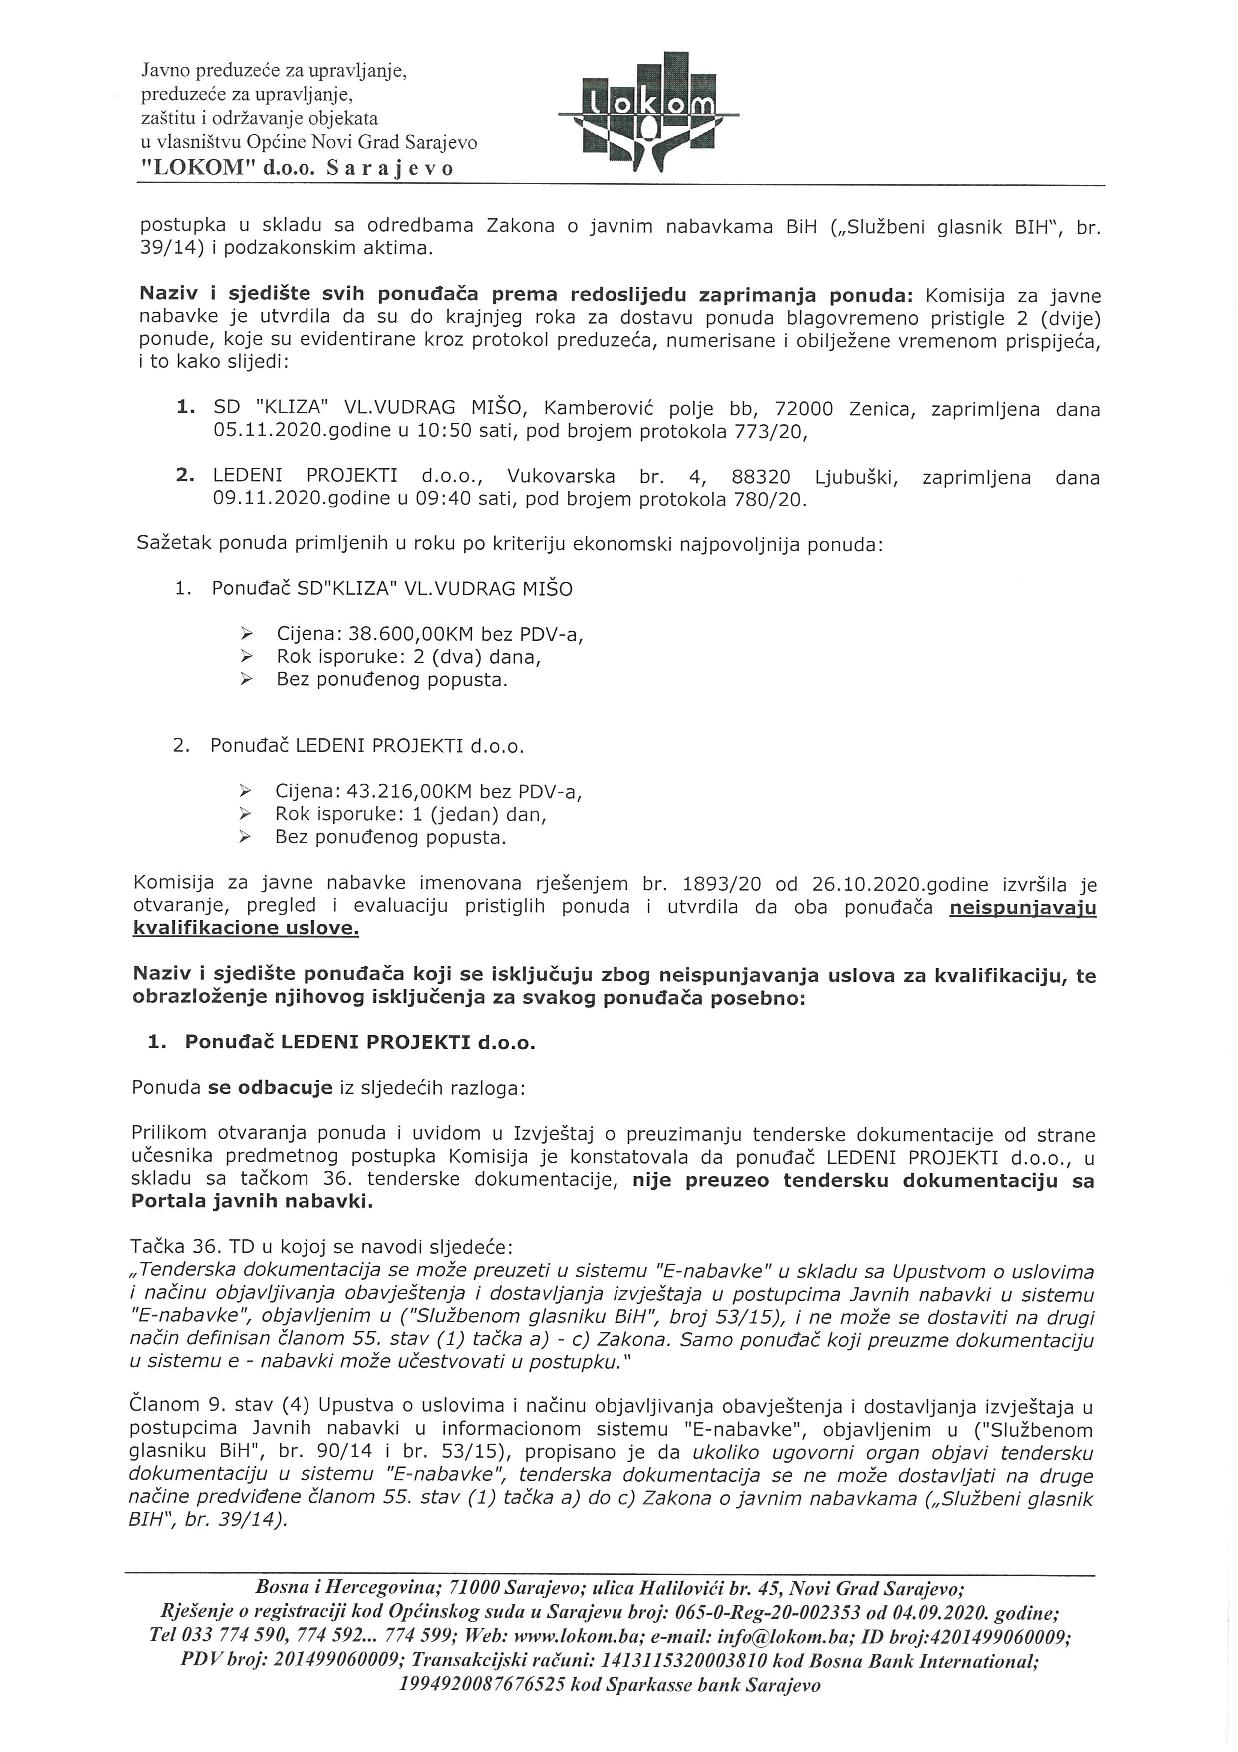 MX-M364N_20201113_095936-page-002